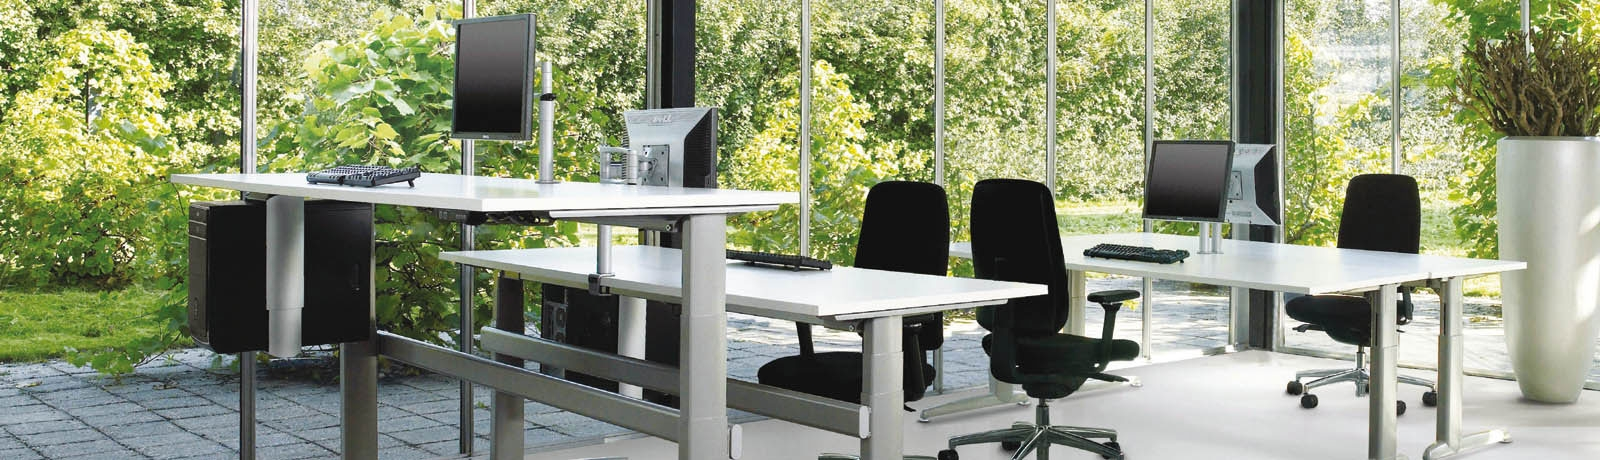 Melbourne Office Furniture (@momentumoffice) Cover Image